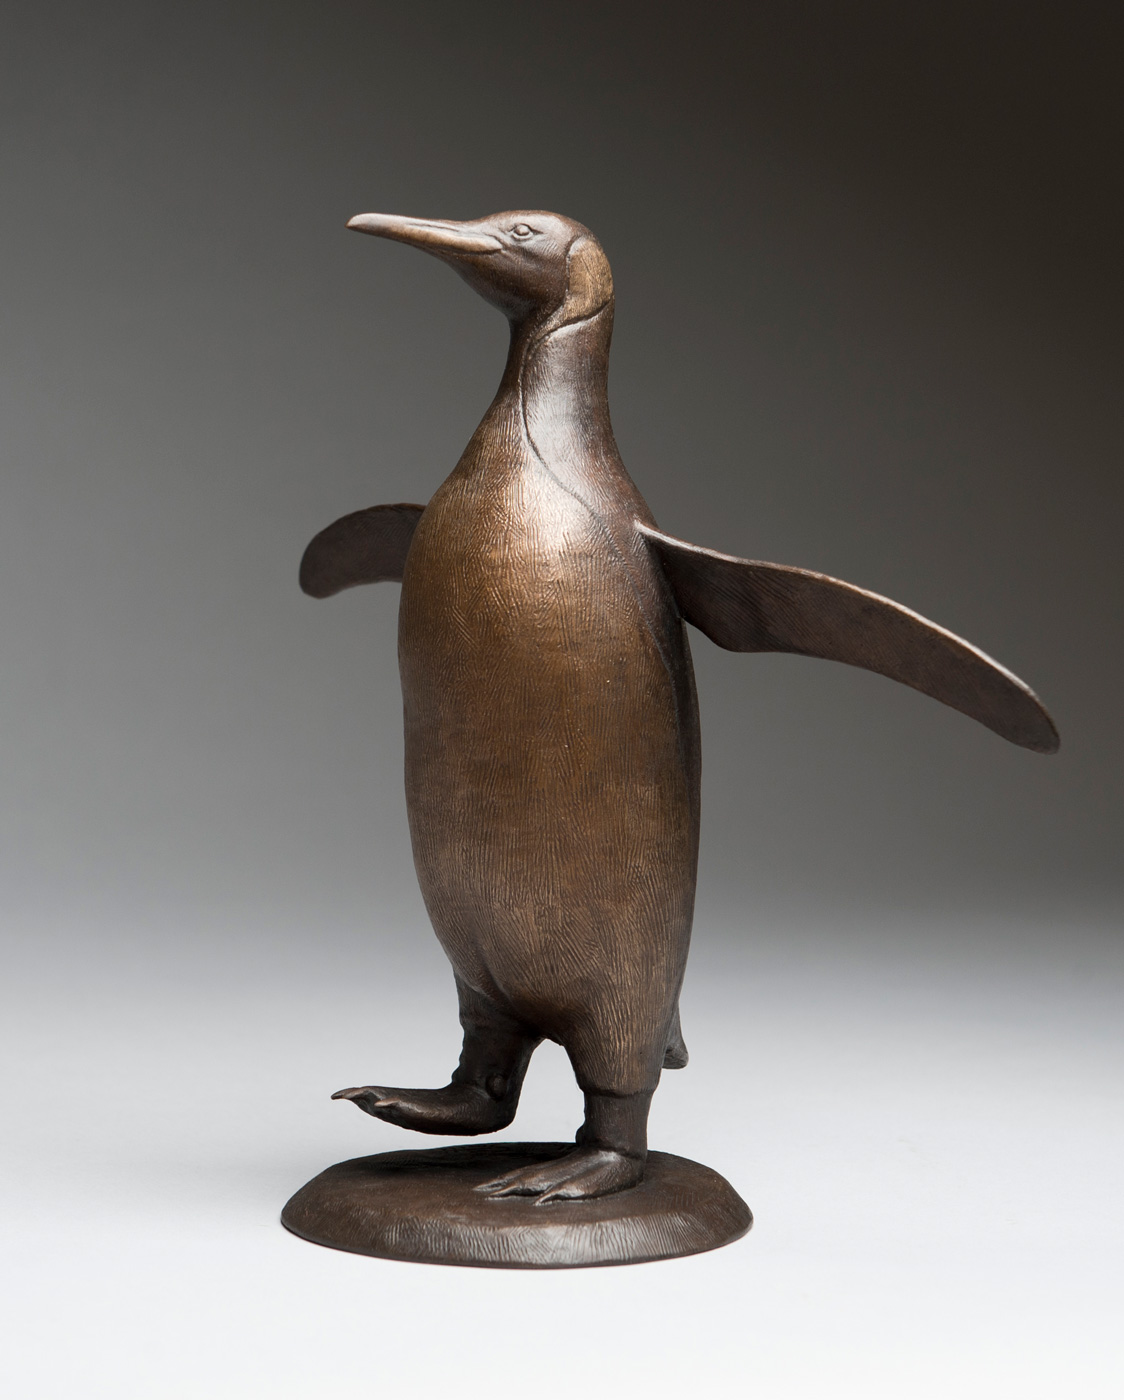 Bronze sculpture of a King Penguin (Small) by artist Anthony Smith